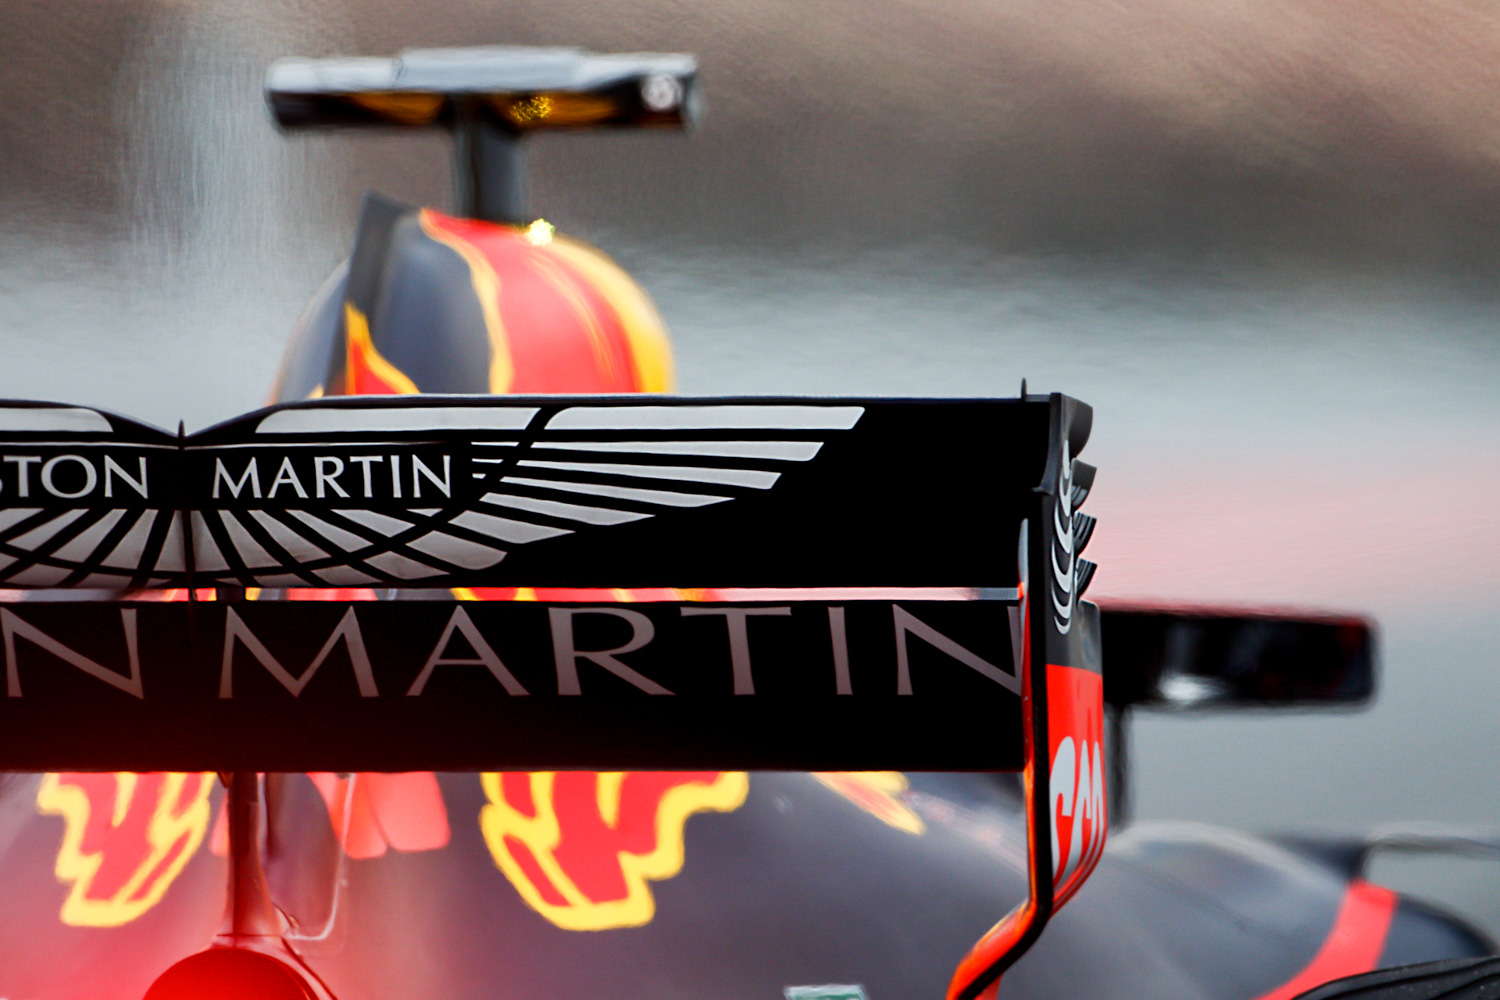 Max VERSTAPPEN - Netherlands - ASTON MARTIN RED BULL RACING - #33 - F1 Test Days - Circuit de Barcelona Catalunya - Spain - 27 February 2018